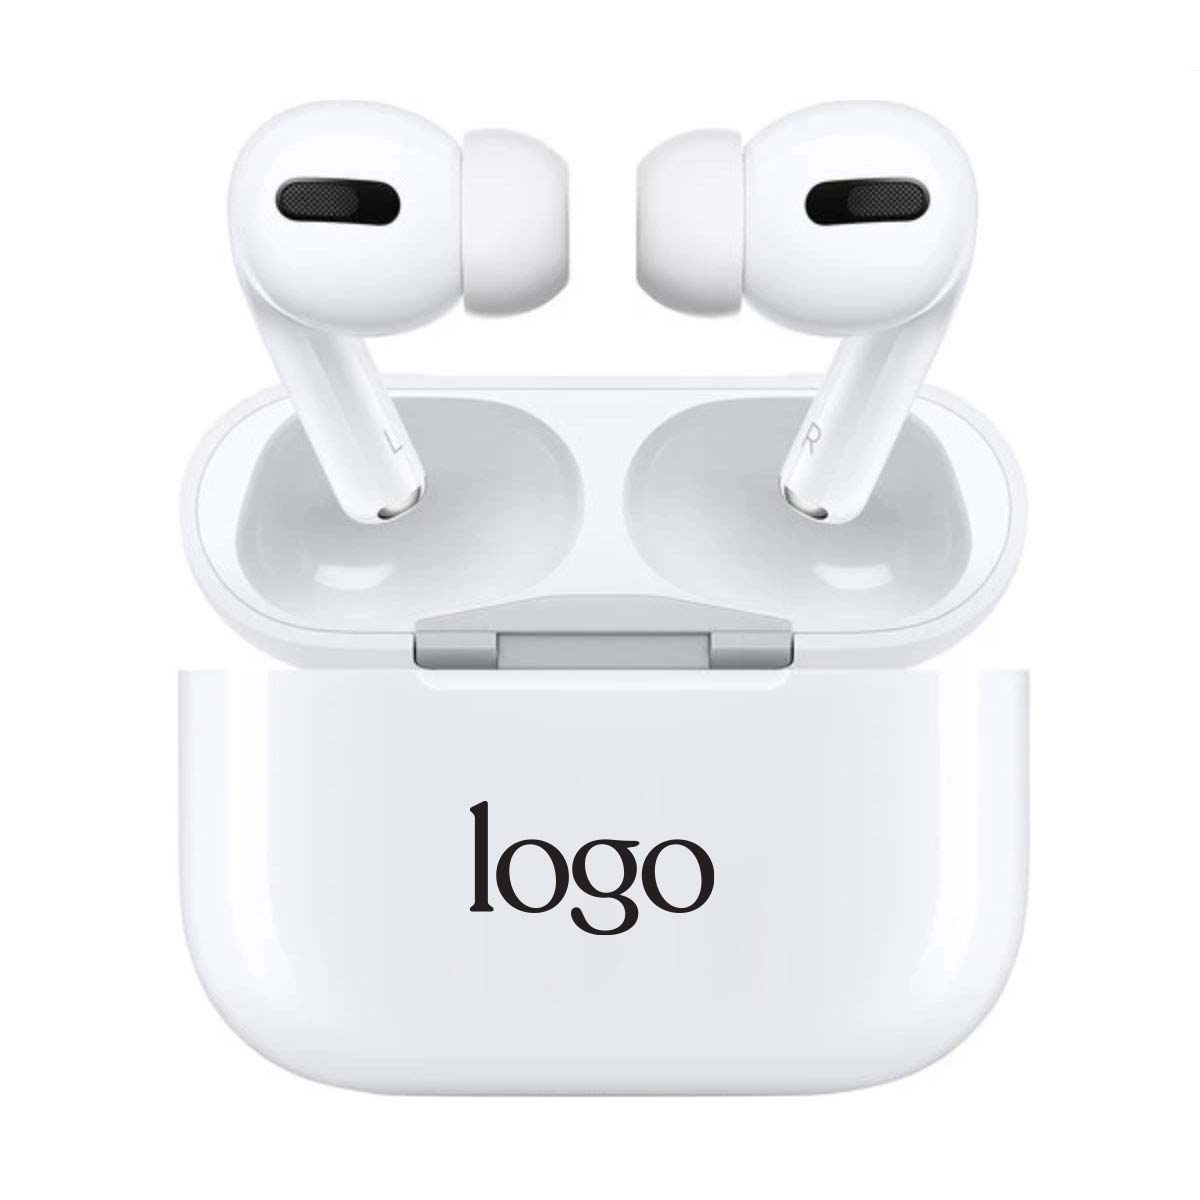 298532 airpods pro two color one location imprint on case only